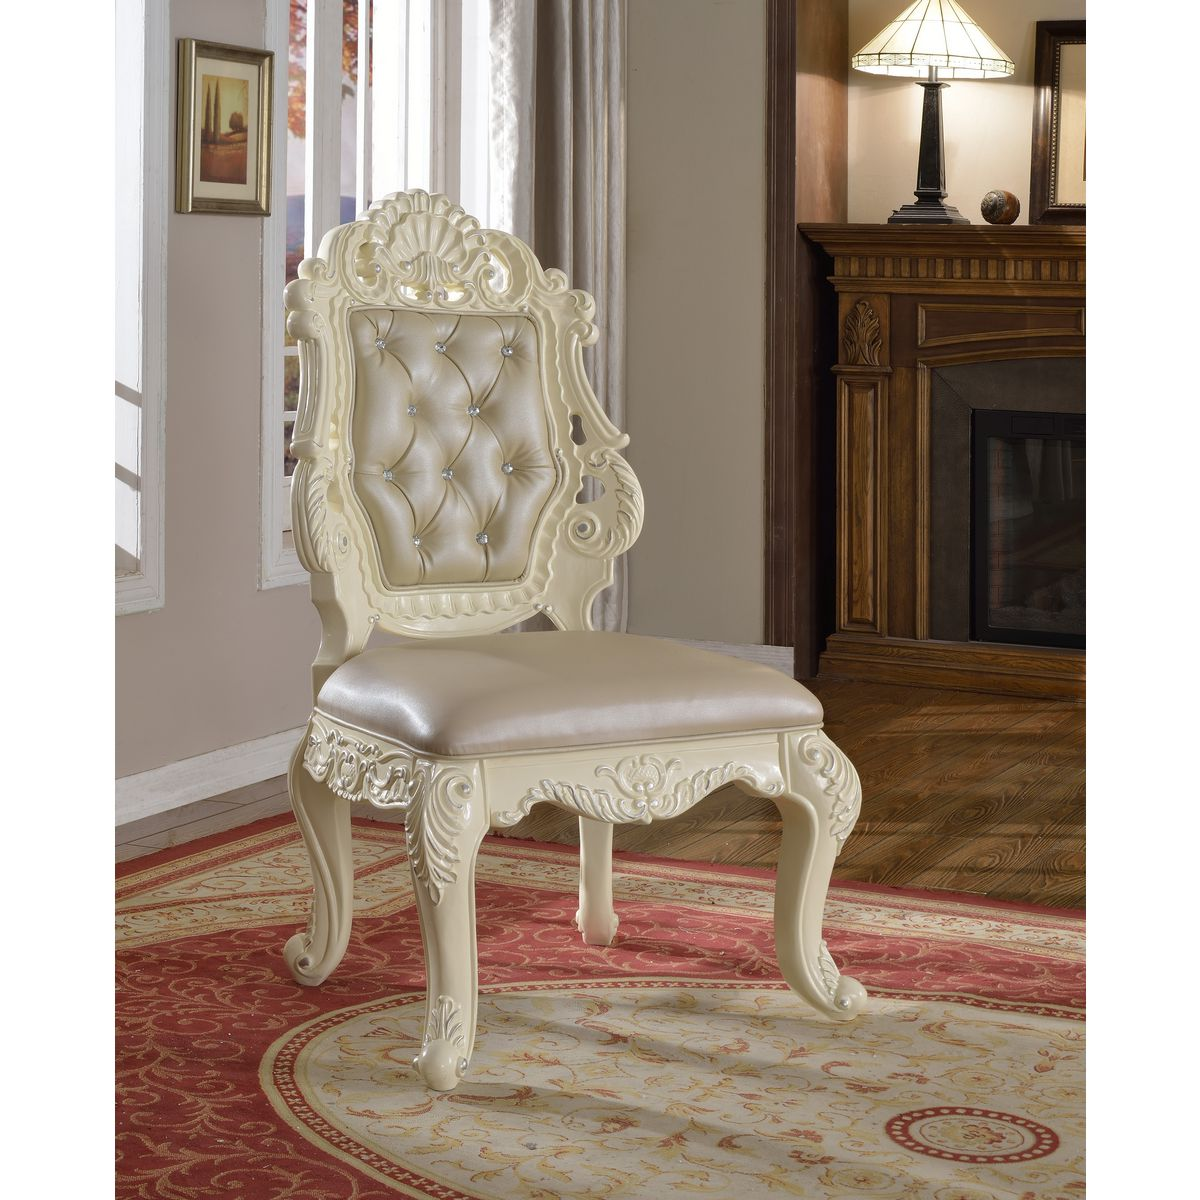 Meridian furniture 702 sc madrid side dining chair in - Home decor columbia sc set ...